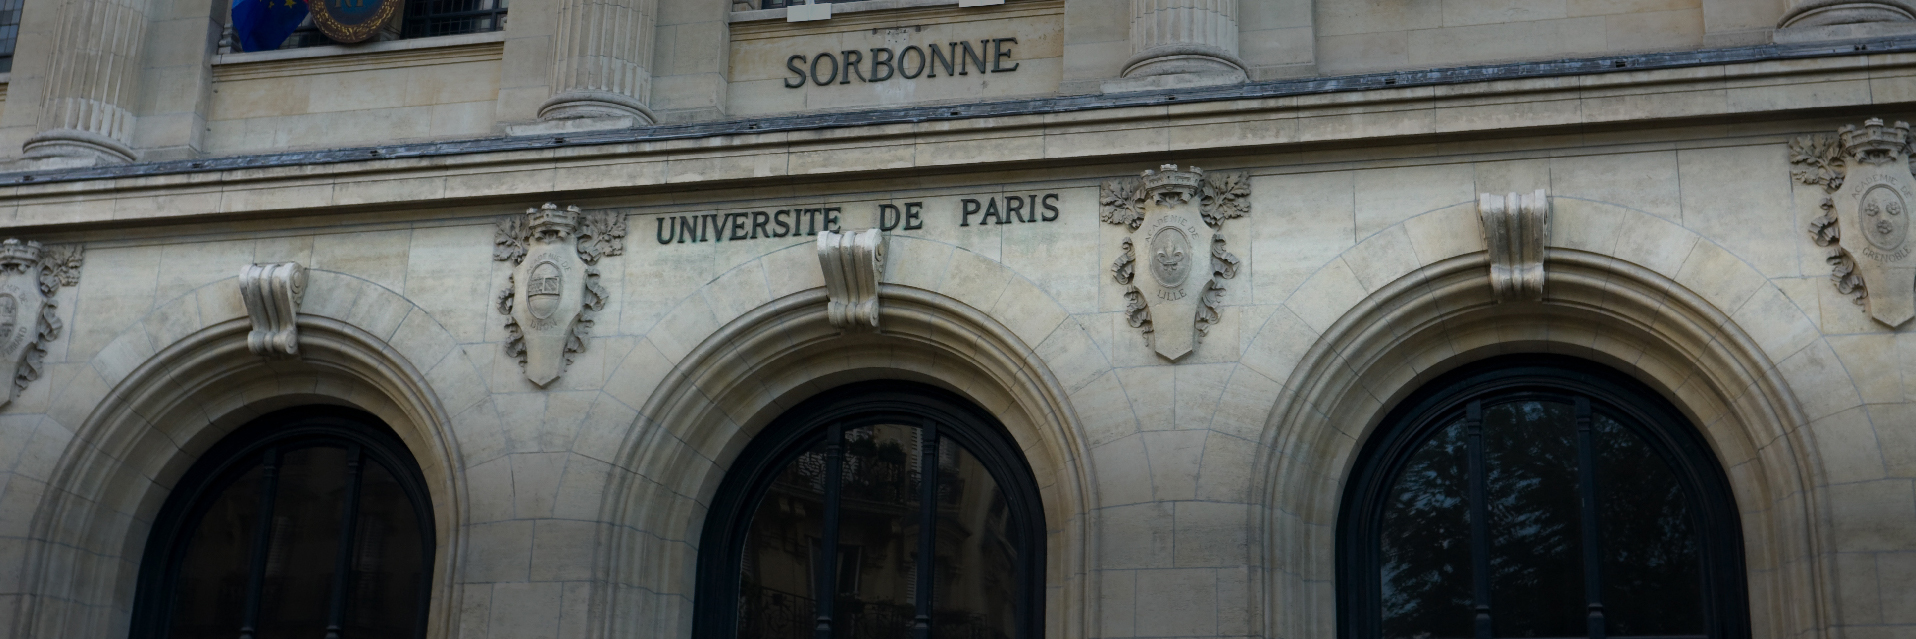 Front facade of the University of Paris